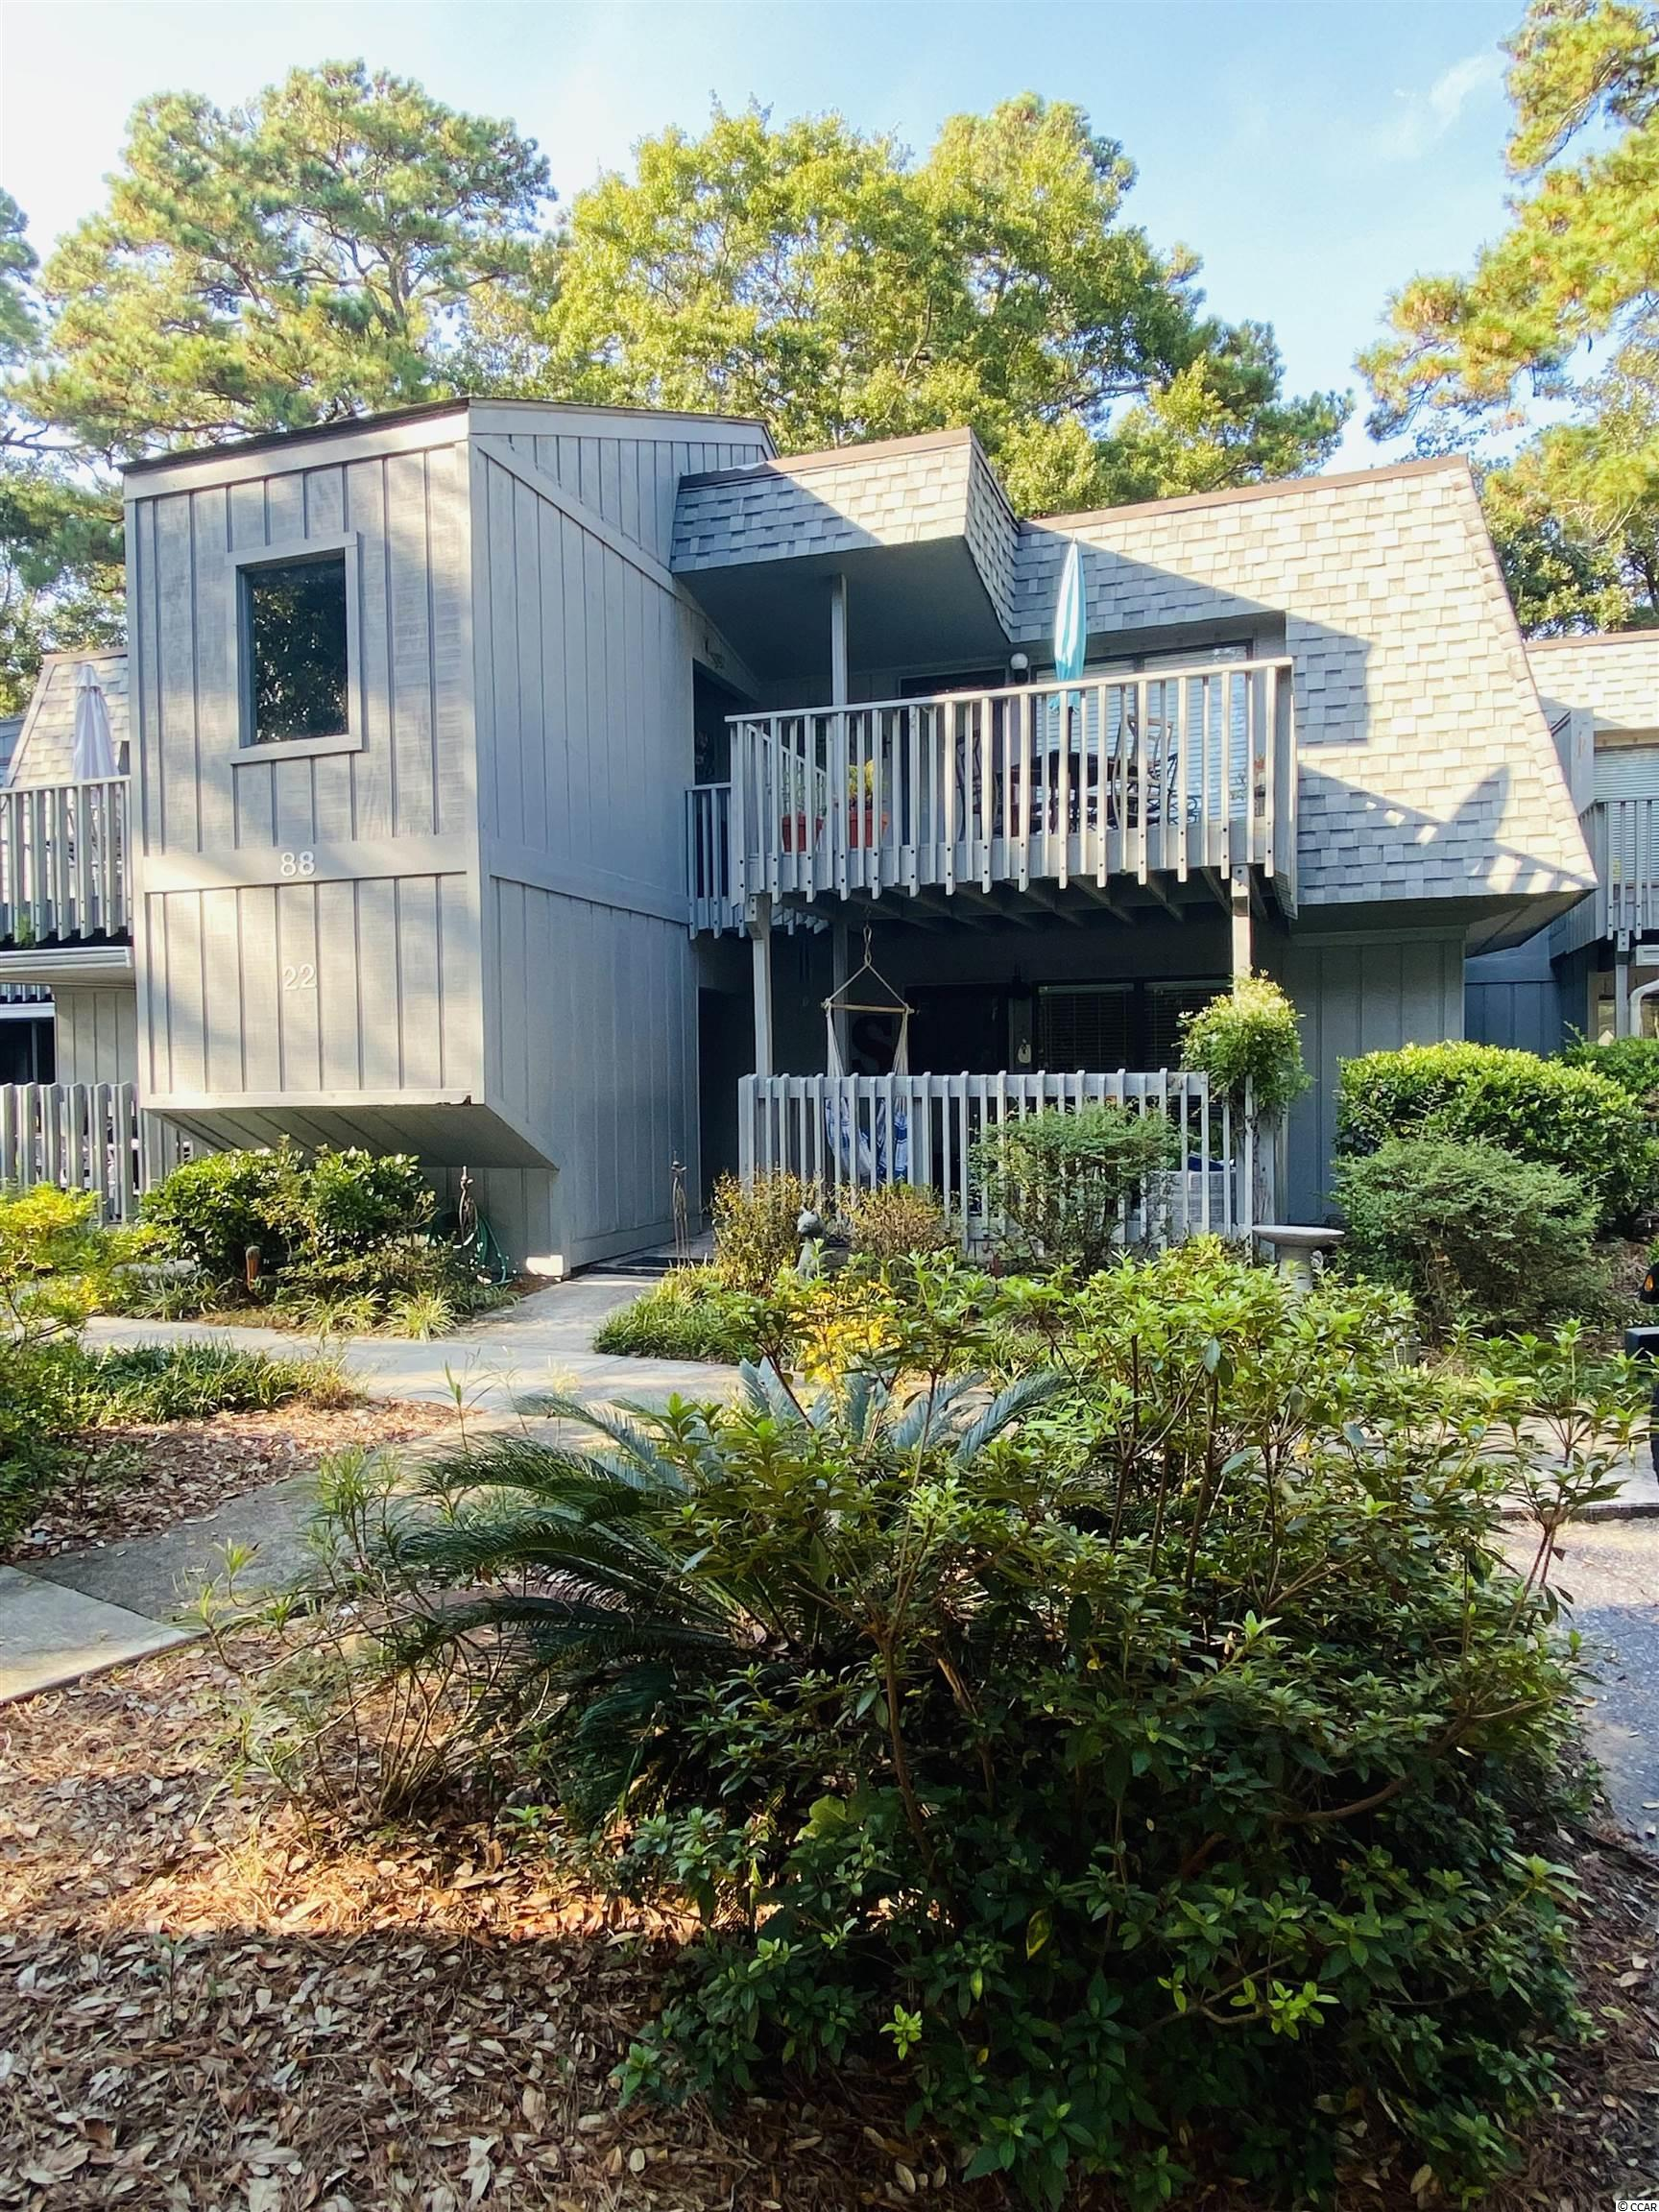 Salt Marsh Cove is a lifestyle!  Nestled amongst oak trees and bordering the spectacular marshes of coastal SC, you are sure to find your happy place.  This first floor 2 bedroom home,  offers the perfect balance of relaxation and functionality. Updated to include newer floors, bathroom vanities,  custom shower, and paint will have you enjoying this home from Day 1!  Outside of the condo itself, you will find yourself tickled to enjoy several  neighborhood amenities to include a community dock overlooking the marsh and all of its wildlife, large swimming pool, club house, pond with fountain and picnic area.  The location itself will have you to the pristine Pawleys Island/Litchfield beaches in minutes.  One drive into this neighborhood show will show you instantly why its been a favorite for full and part time residents for years.  Put this one on your list to show today!! Co-Listing agent is related to the seller